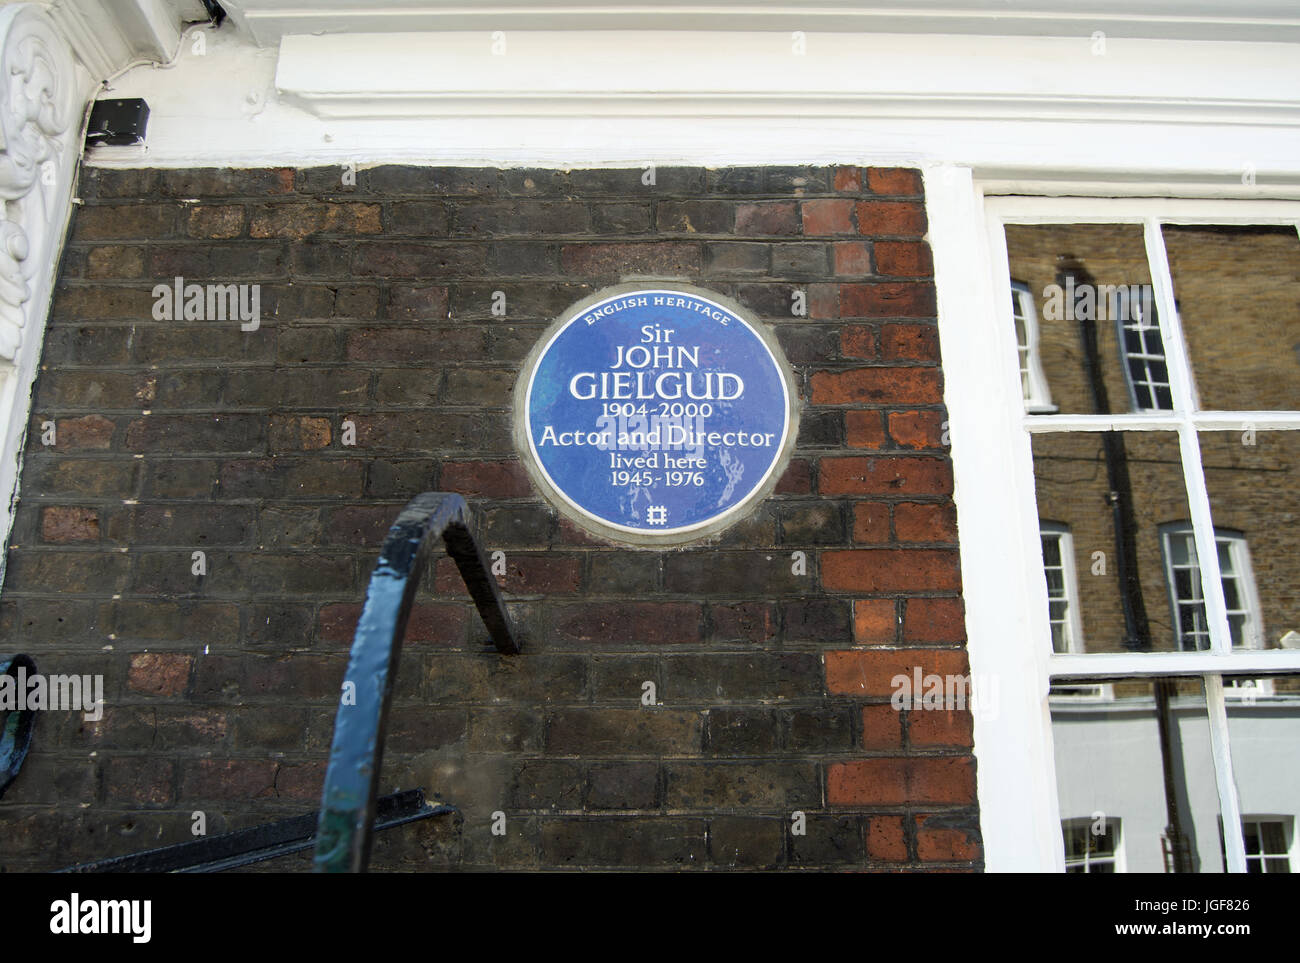 english heritage blue plaque marking a home of actor and director sir john gielgud, westminster, london, england - Stock Image